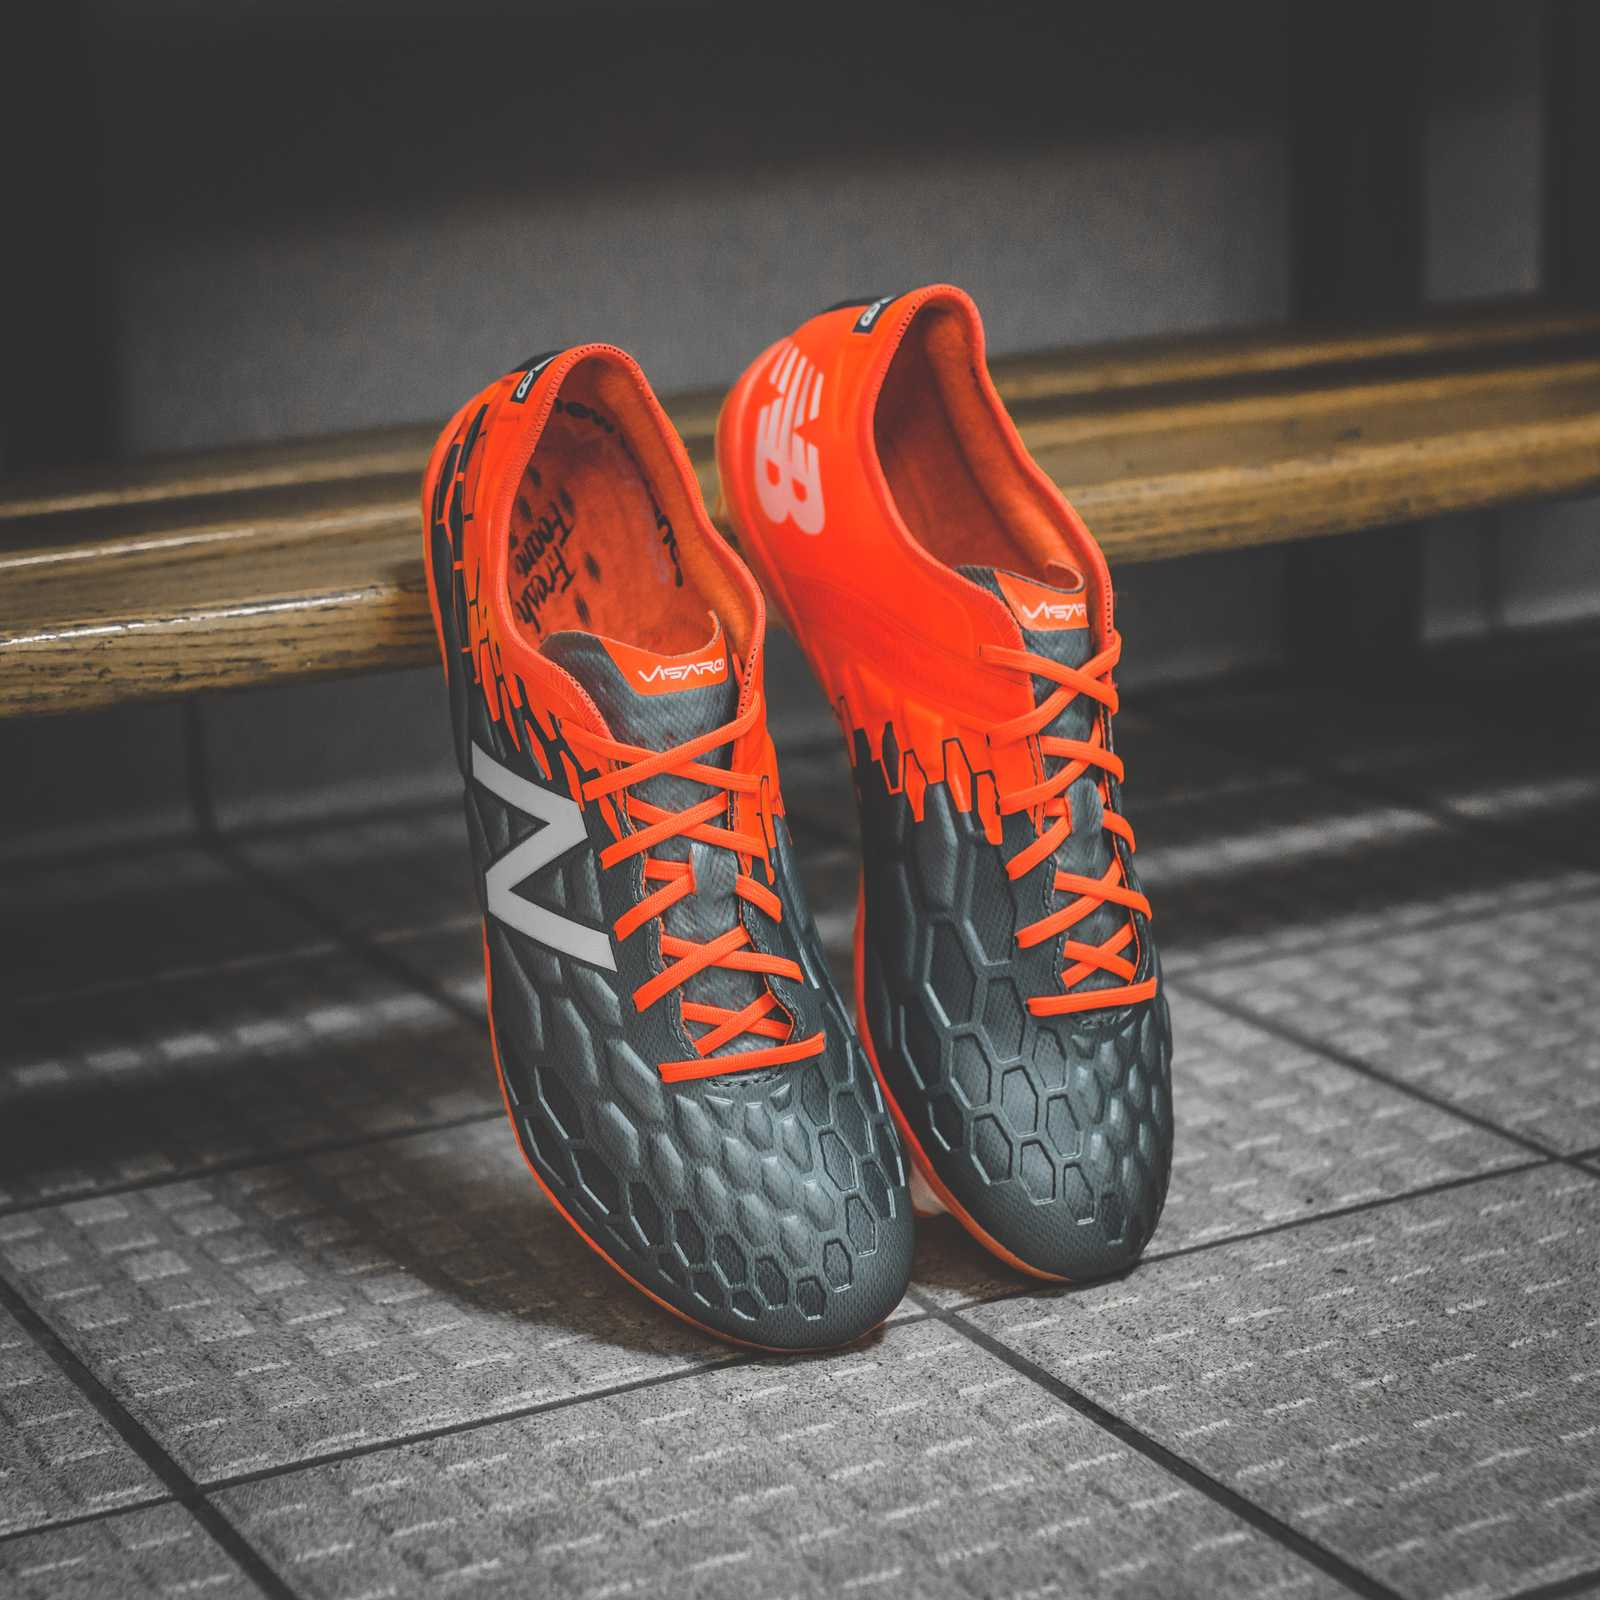 innovative design best deals on well known New Balance Visaro 2 Football Boots – Forza27